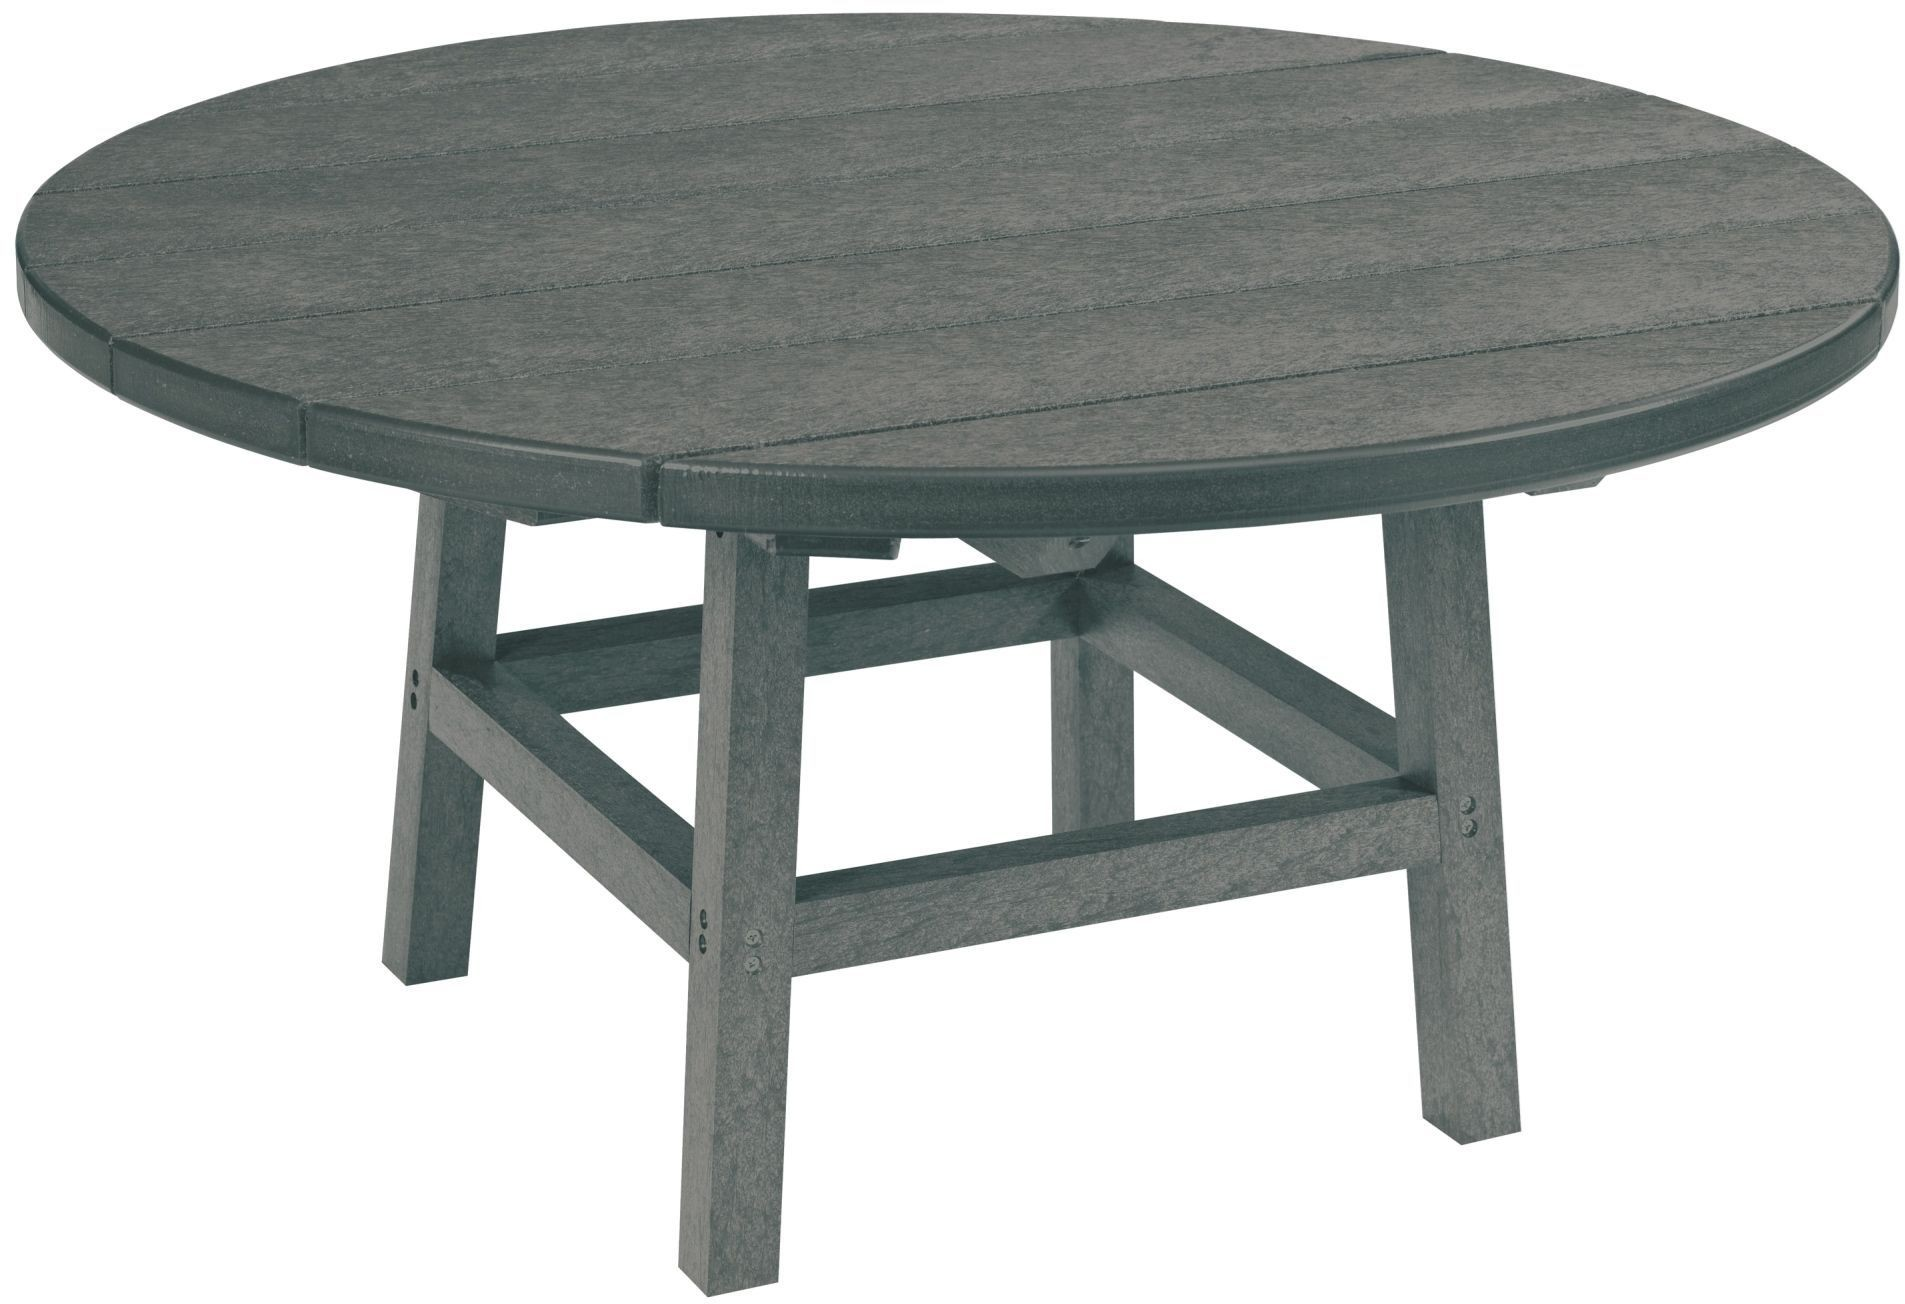 Generations Slate Grey 37 Round Cocktail Table Tt02 Tb01 16 Cr Plastic